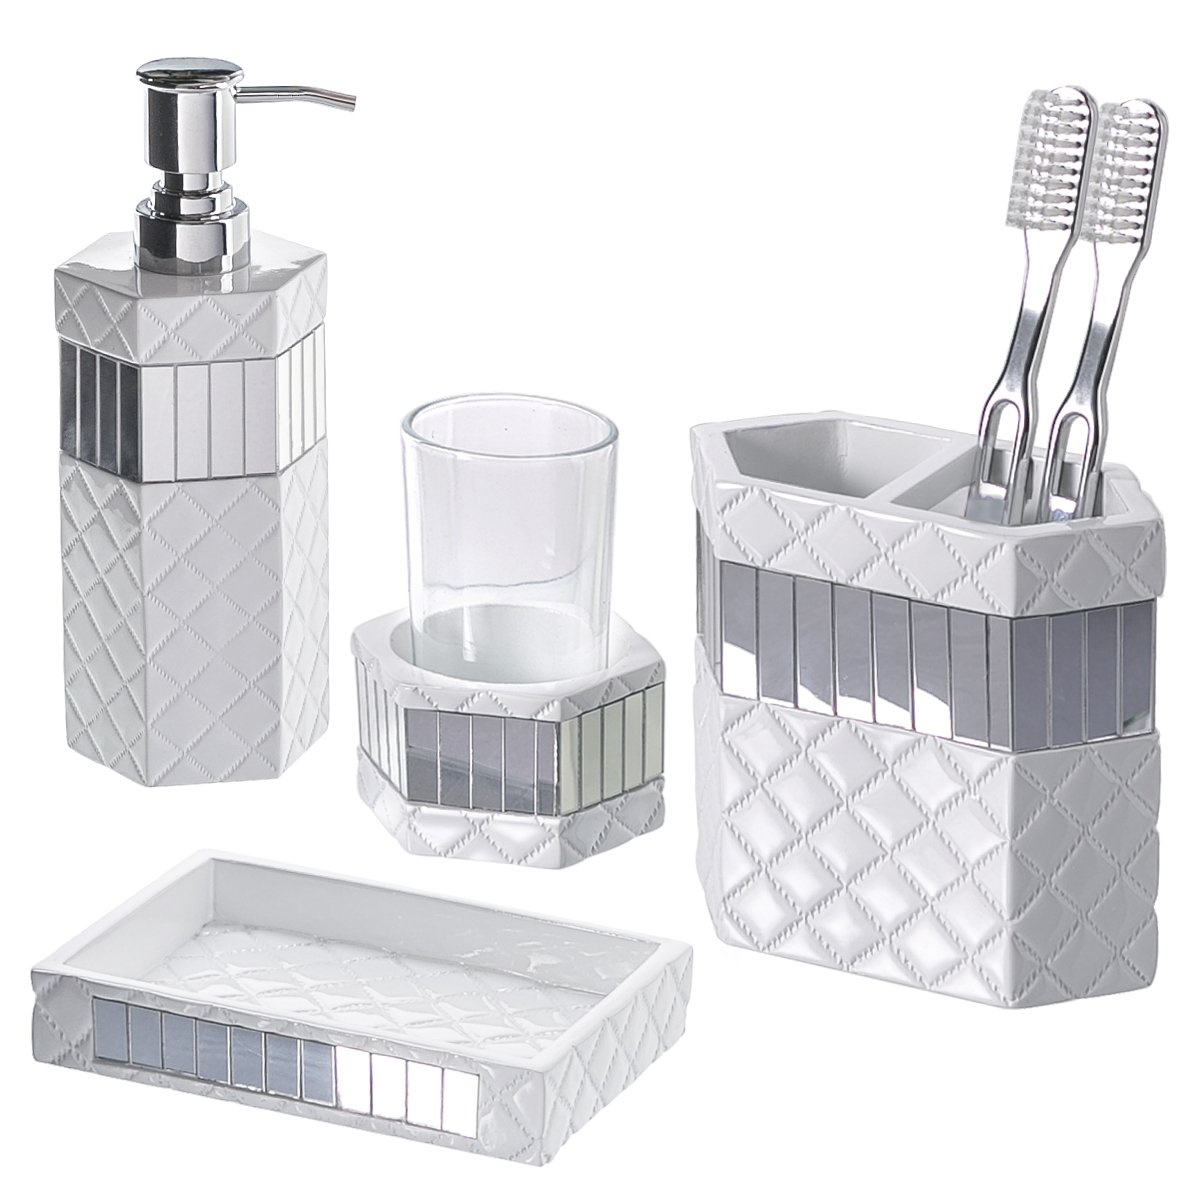 4 piece quilted mirror bathroom accessories set with soap for Bathroom accessories set